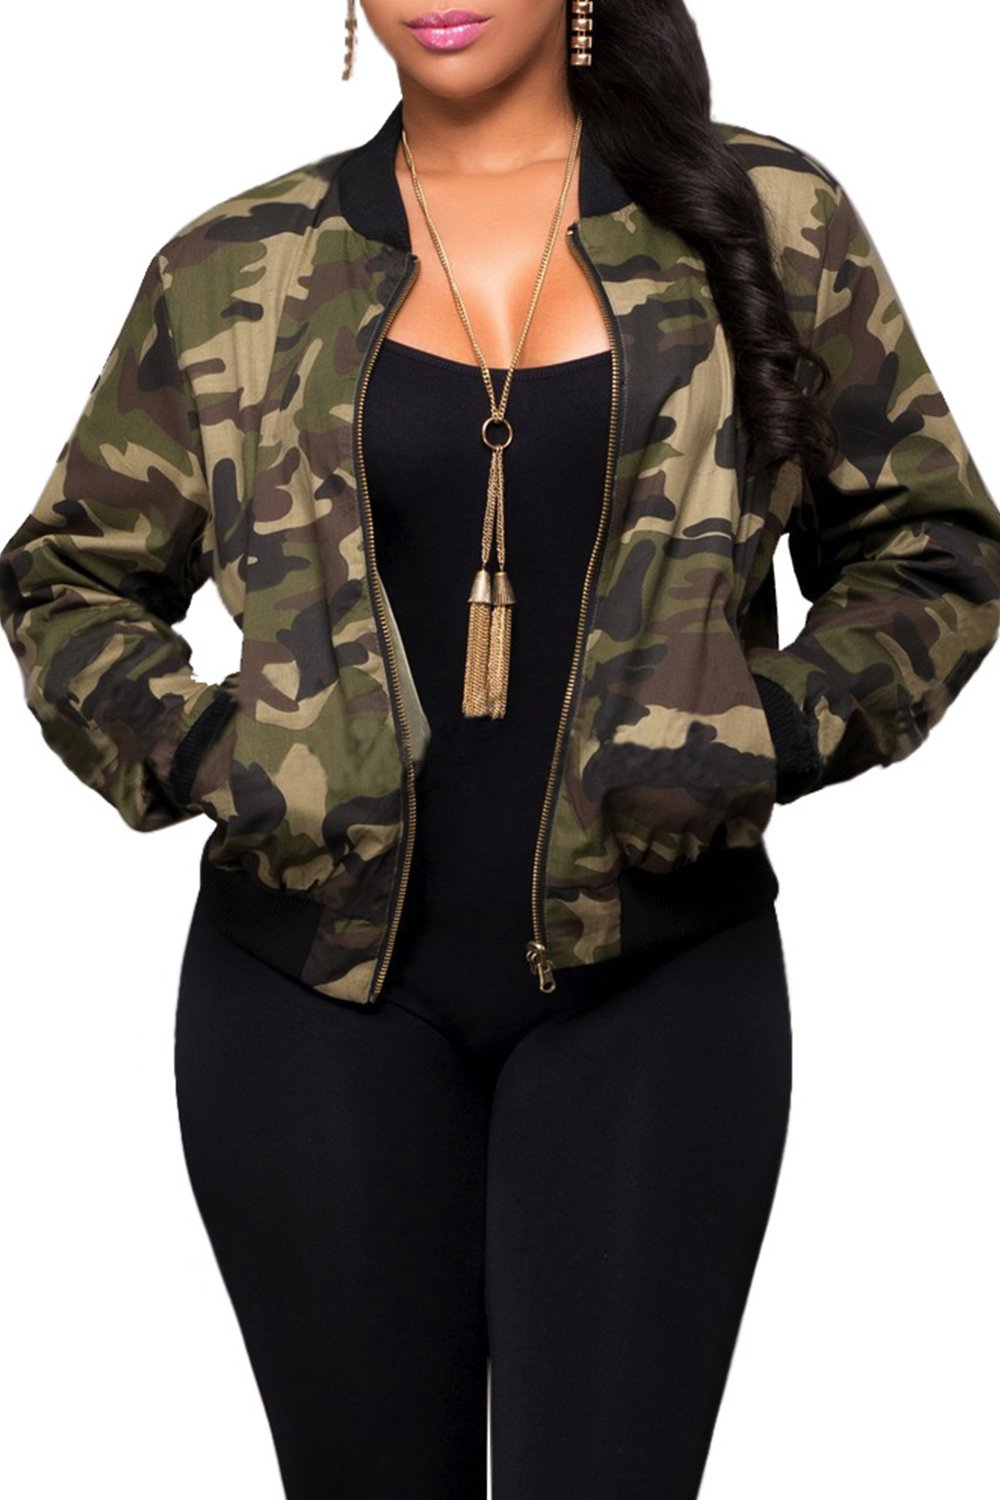 Women Fall Casual Camouflage Print Zip Up Army Military Camo Bomber Jacket Outcoat CAFZ846